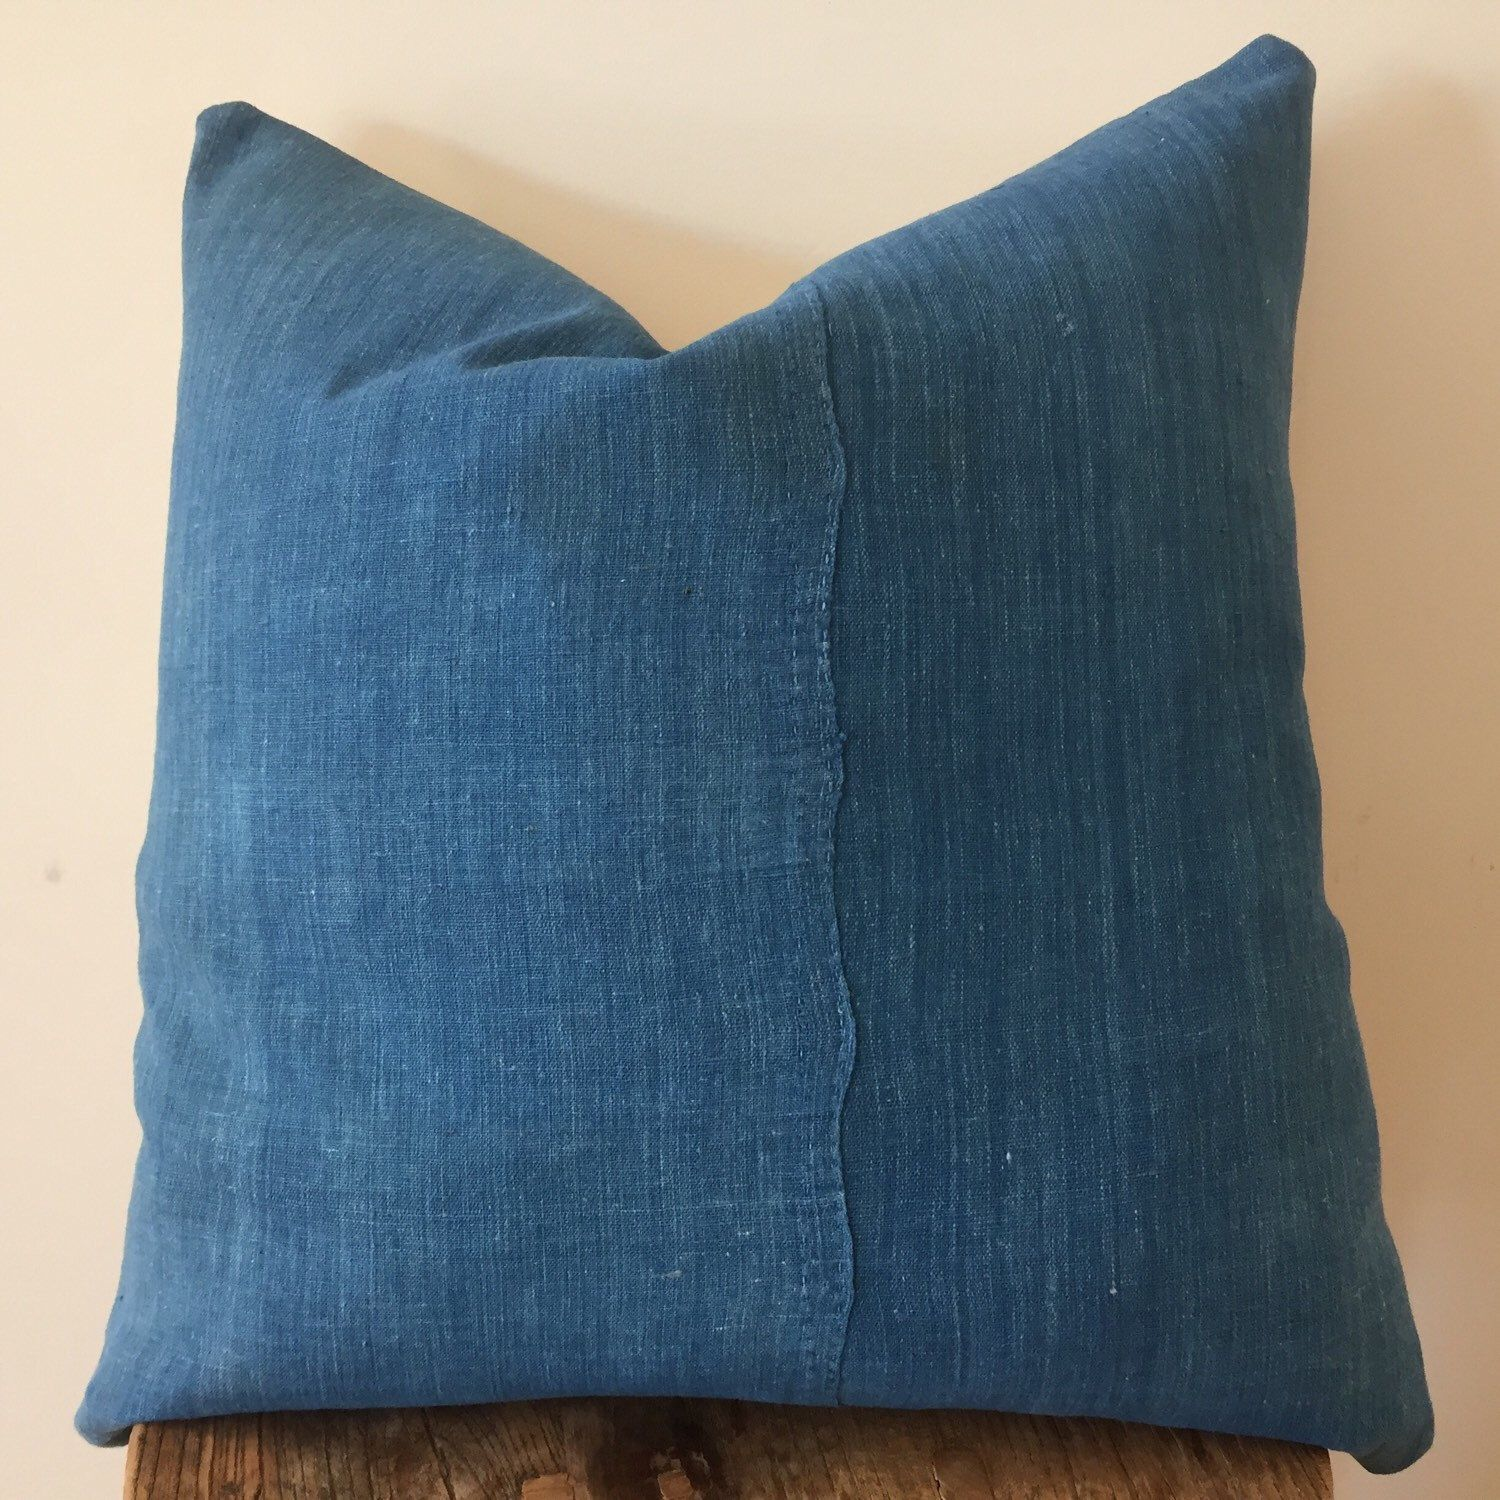 Vintage Indigo Fabric From An Old Japanese Futon Cover It S Probably The 70 And